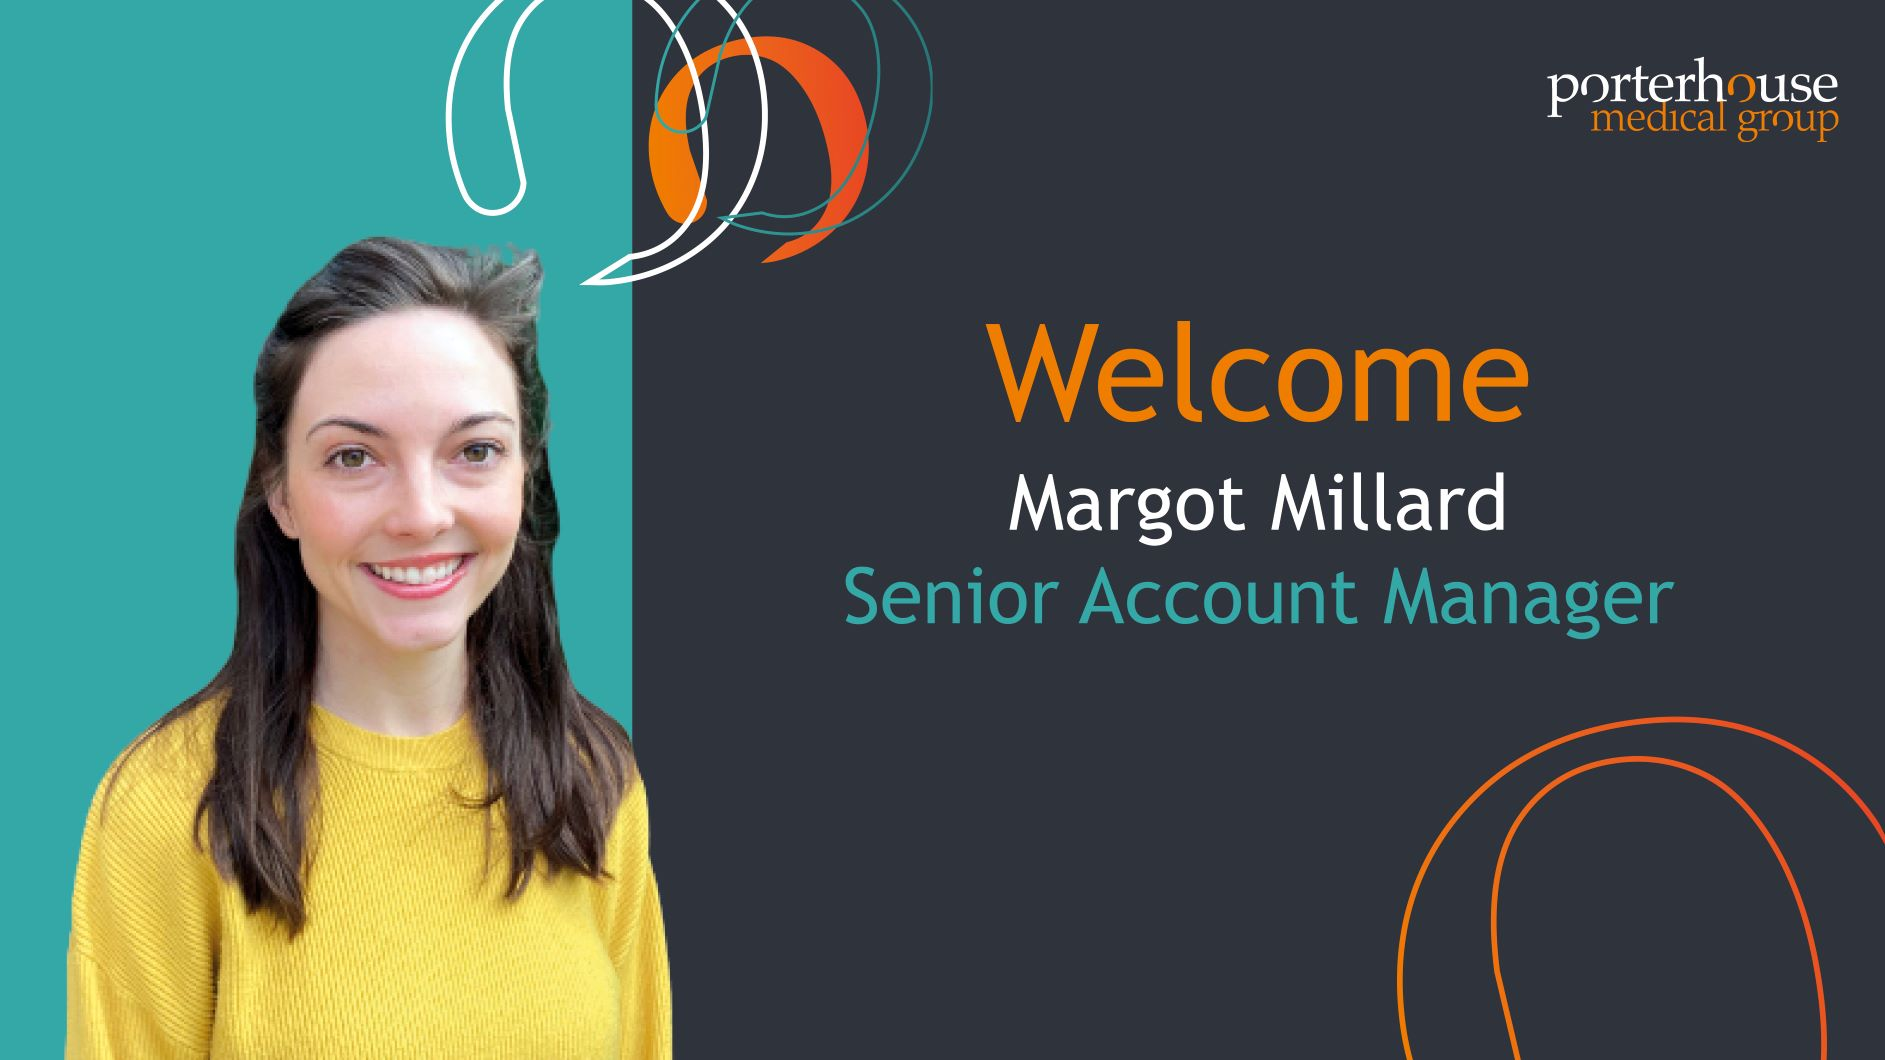 Margot Millard_Senior Account Manager_Porterhouse Medical